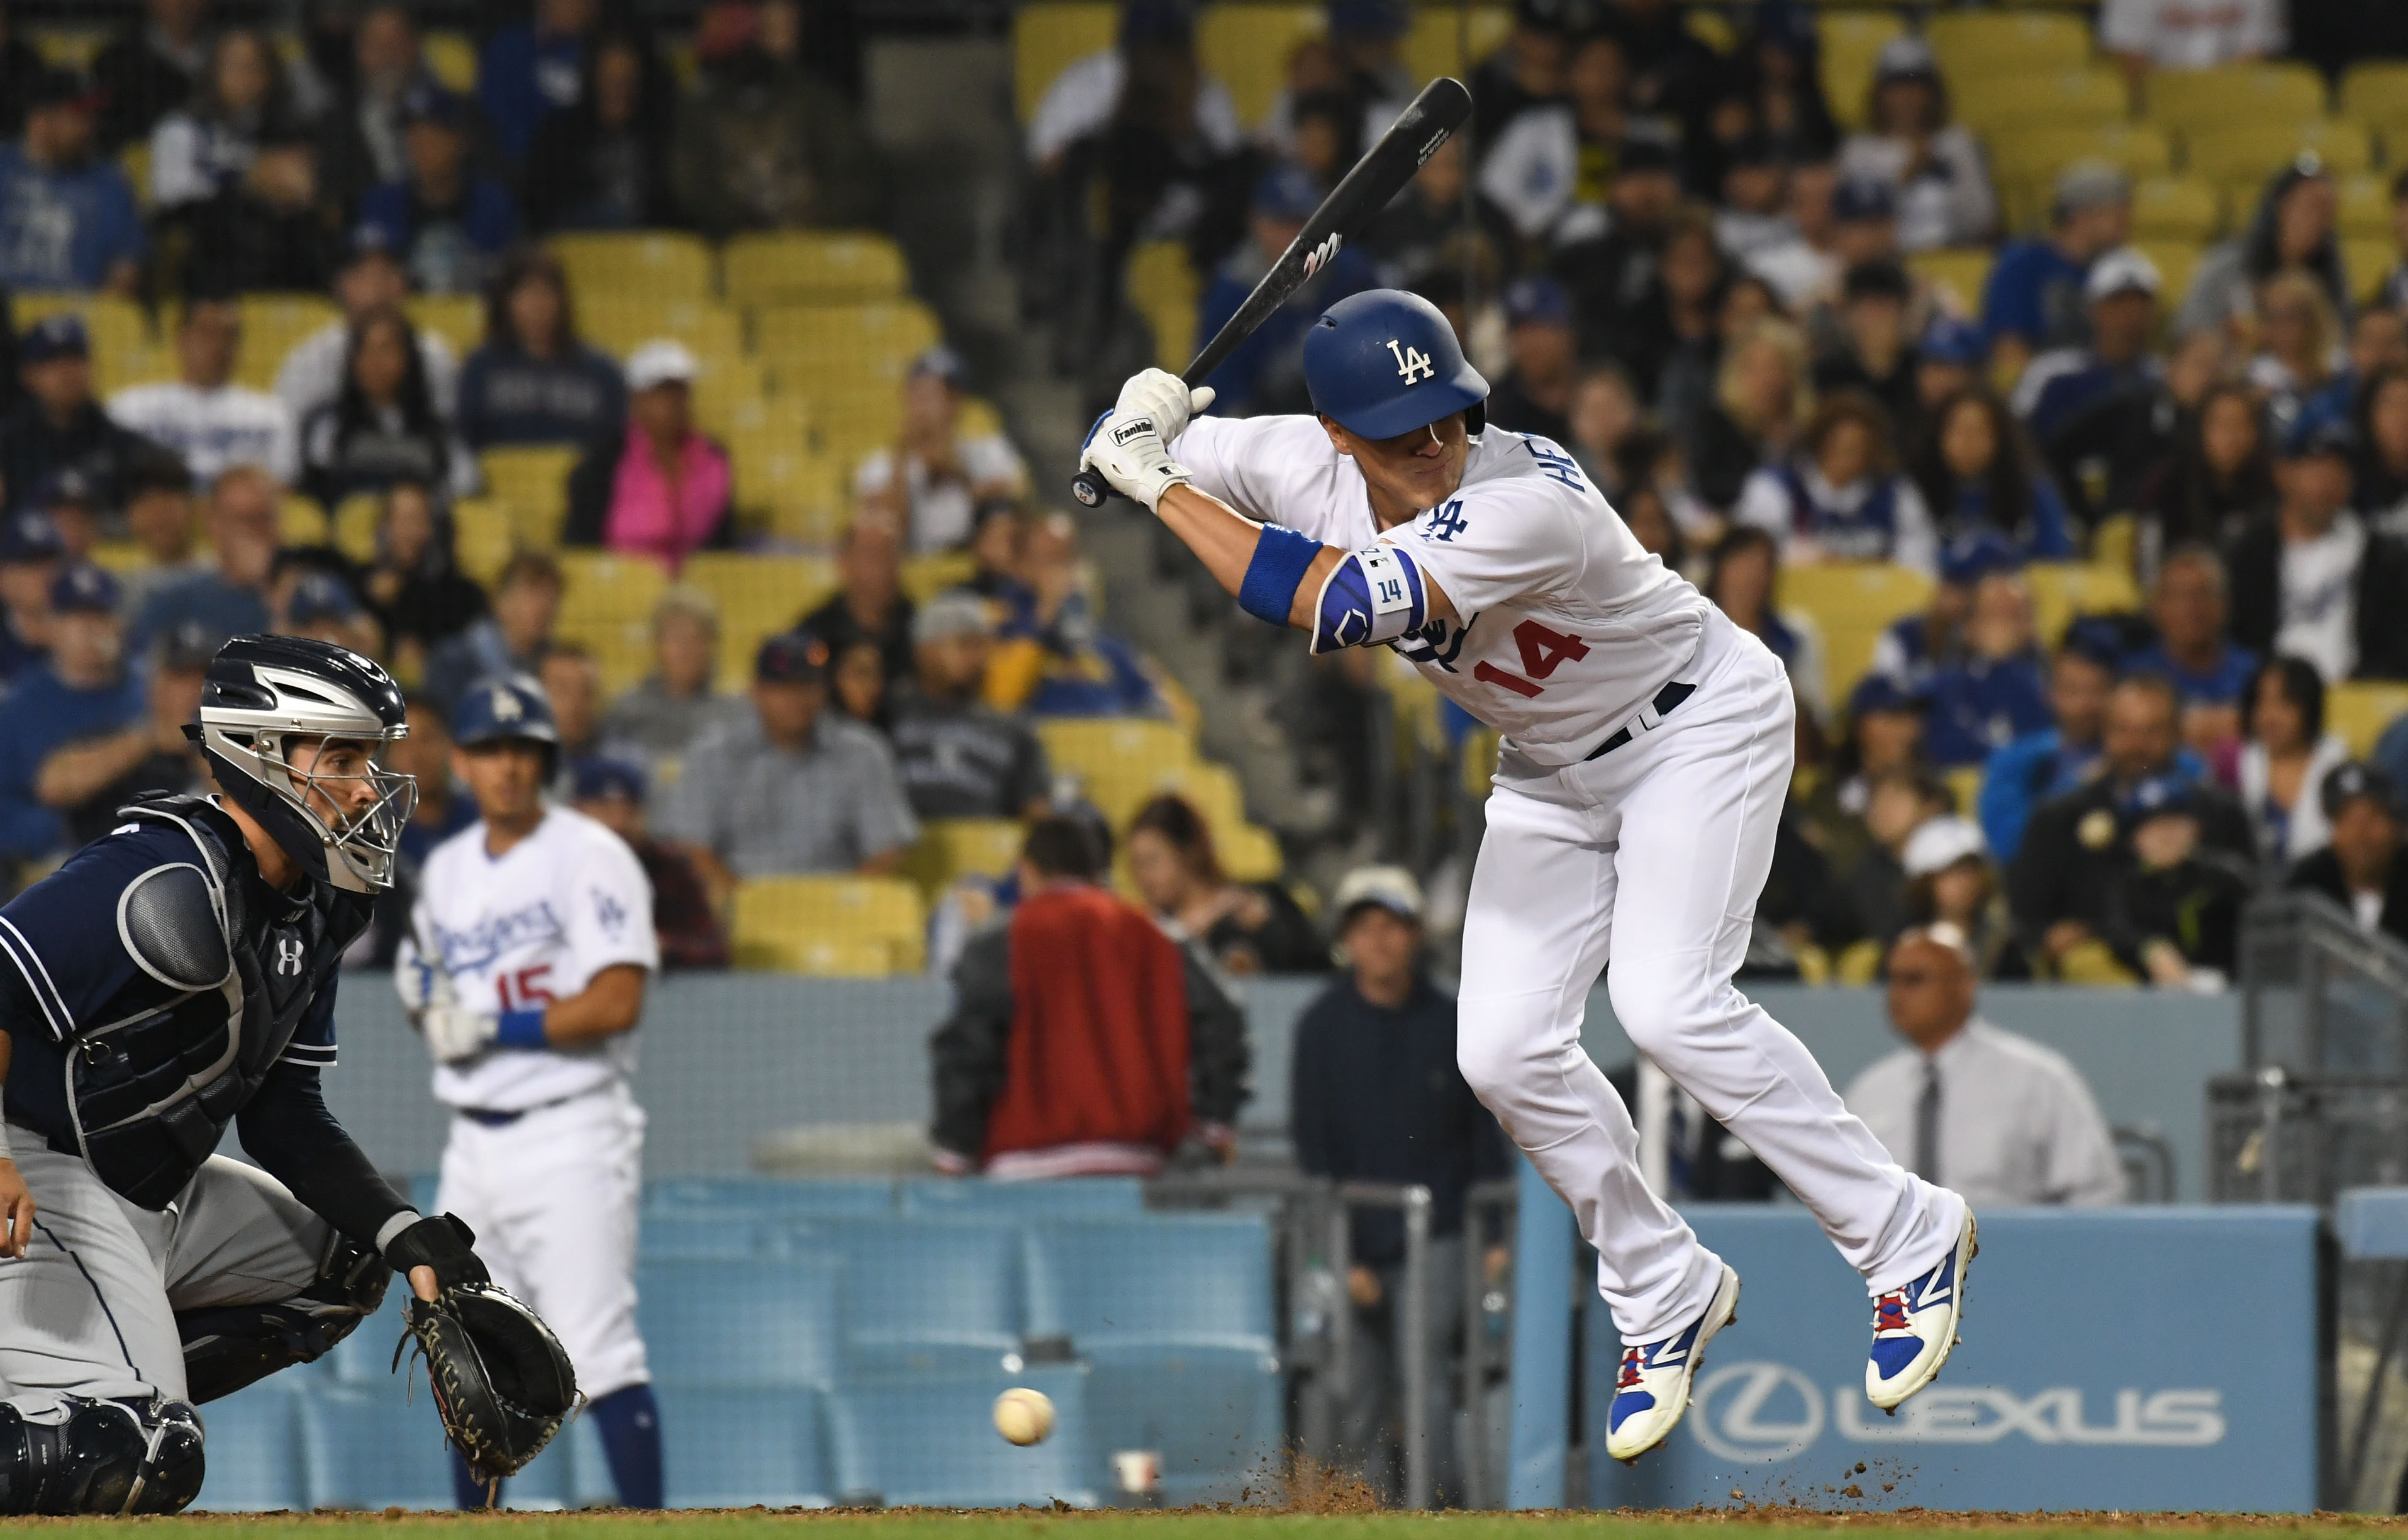 Hill starts strong, Puig homers and Dodgers beat Padres 3-1